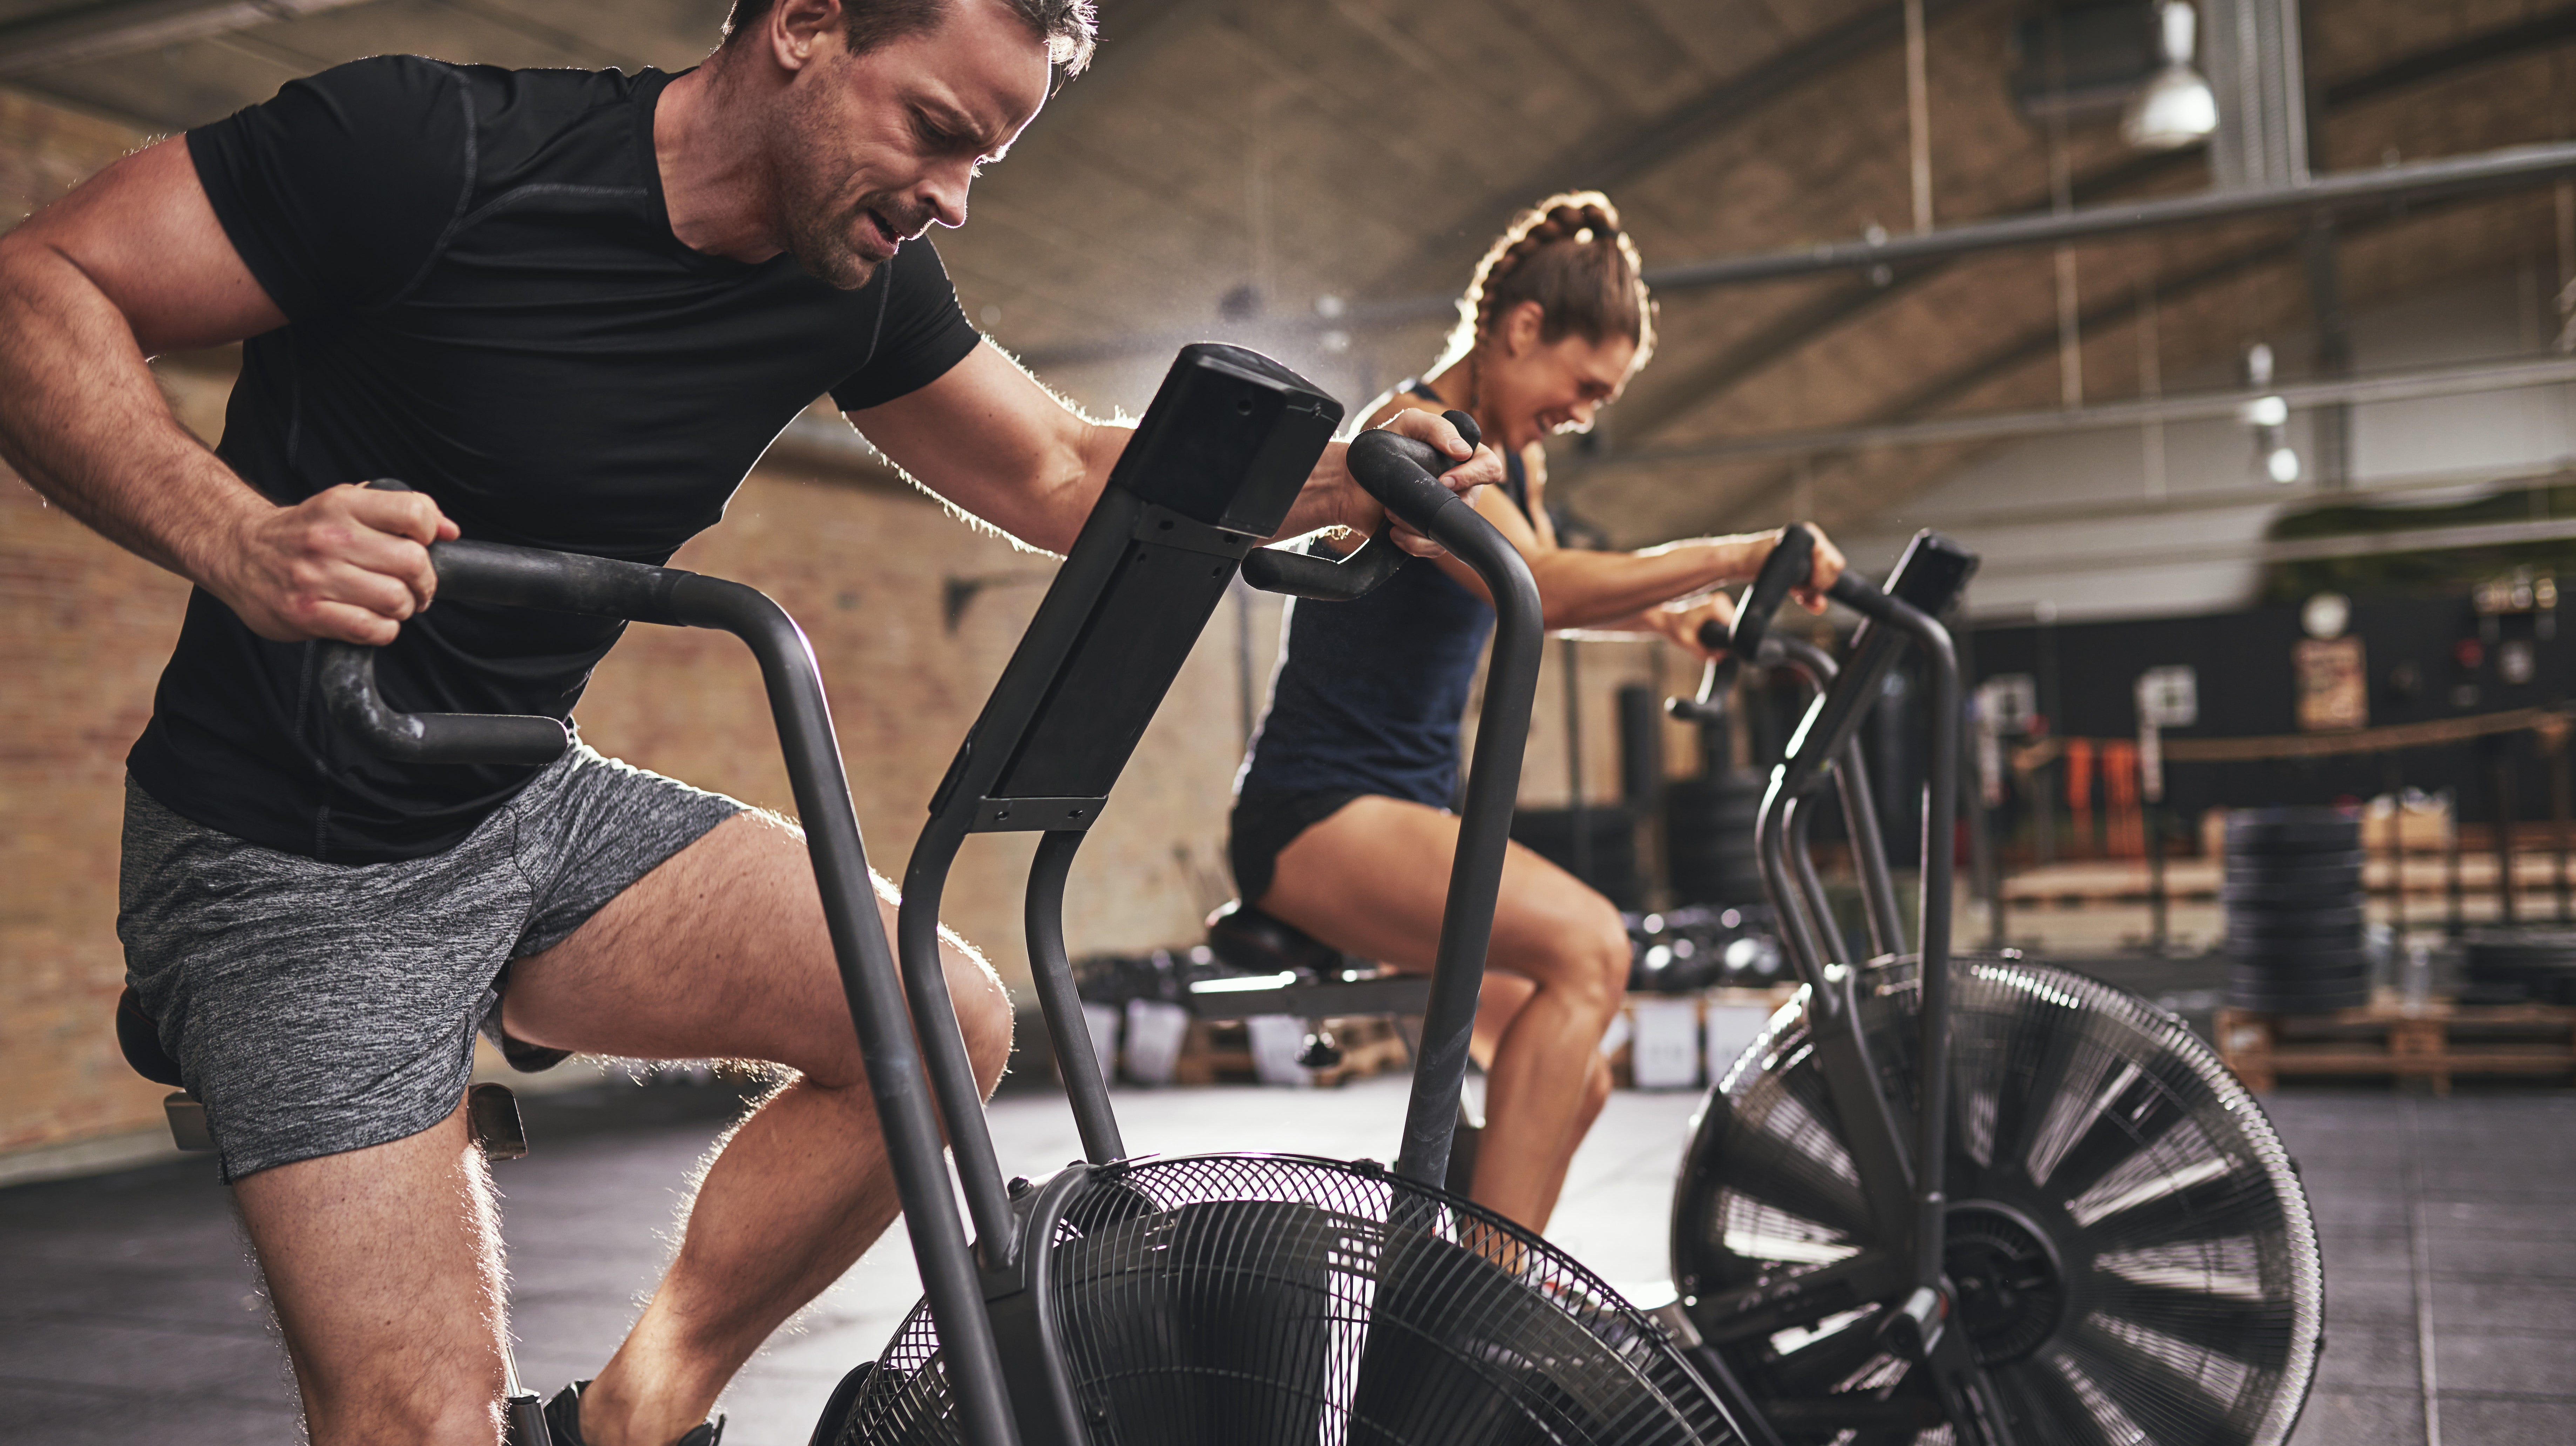 How To Get A Great Interval Workout On Gym Cardio Machines